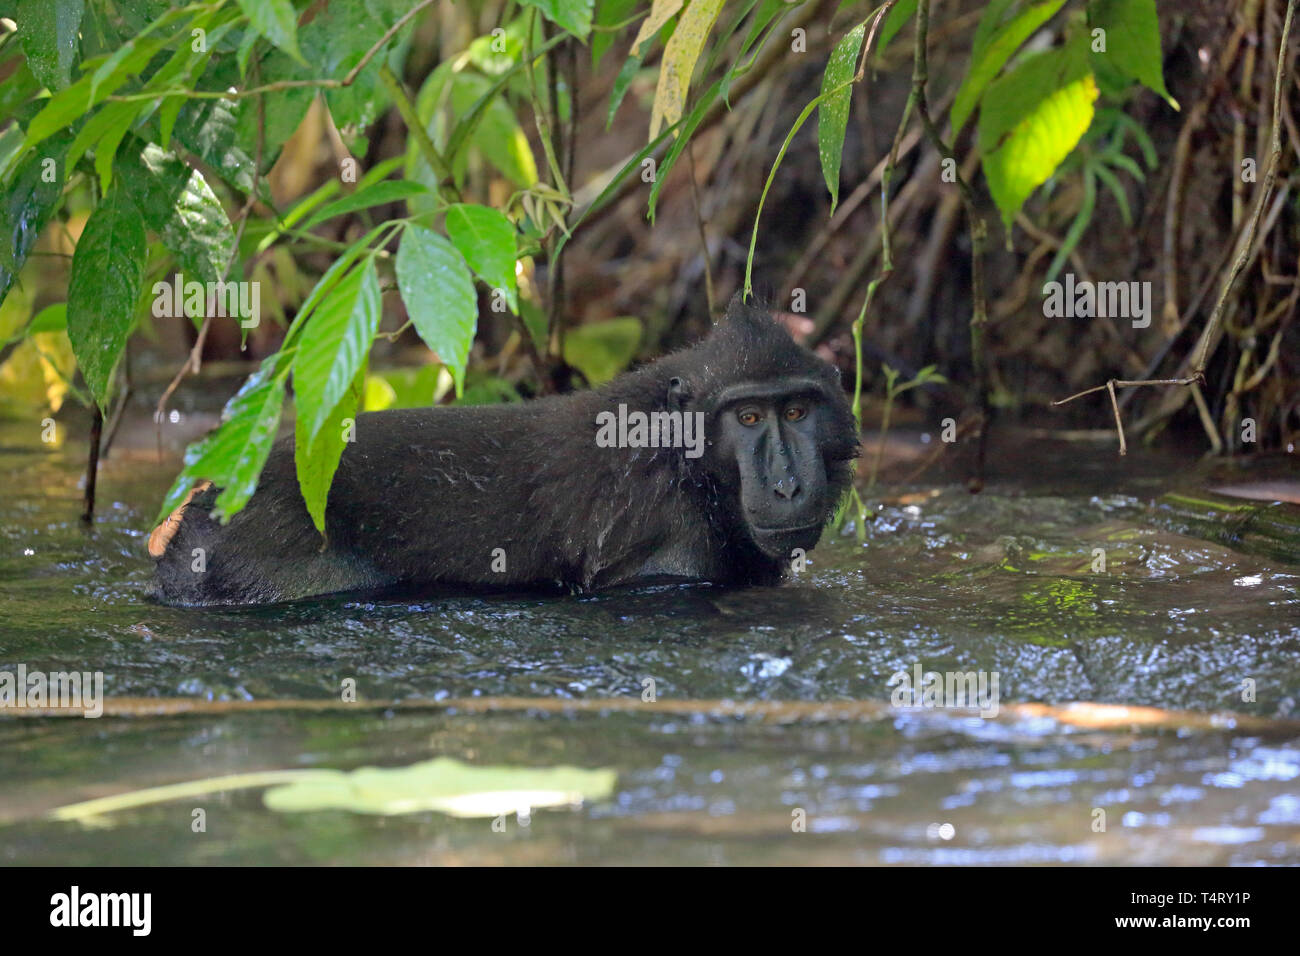 Crested Black Macaque in a river in Sulawesi Indonesia - Stock Image